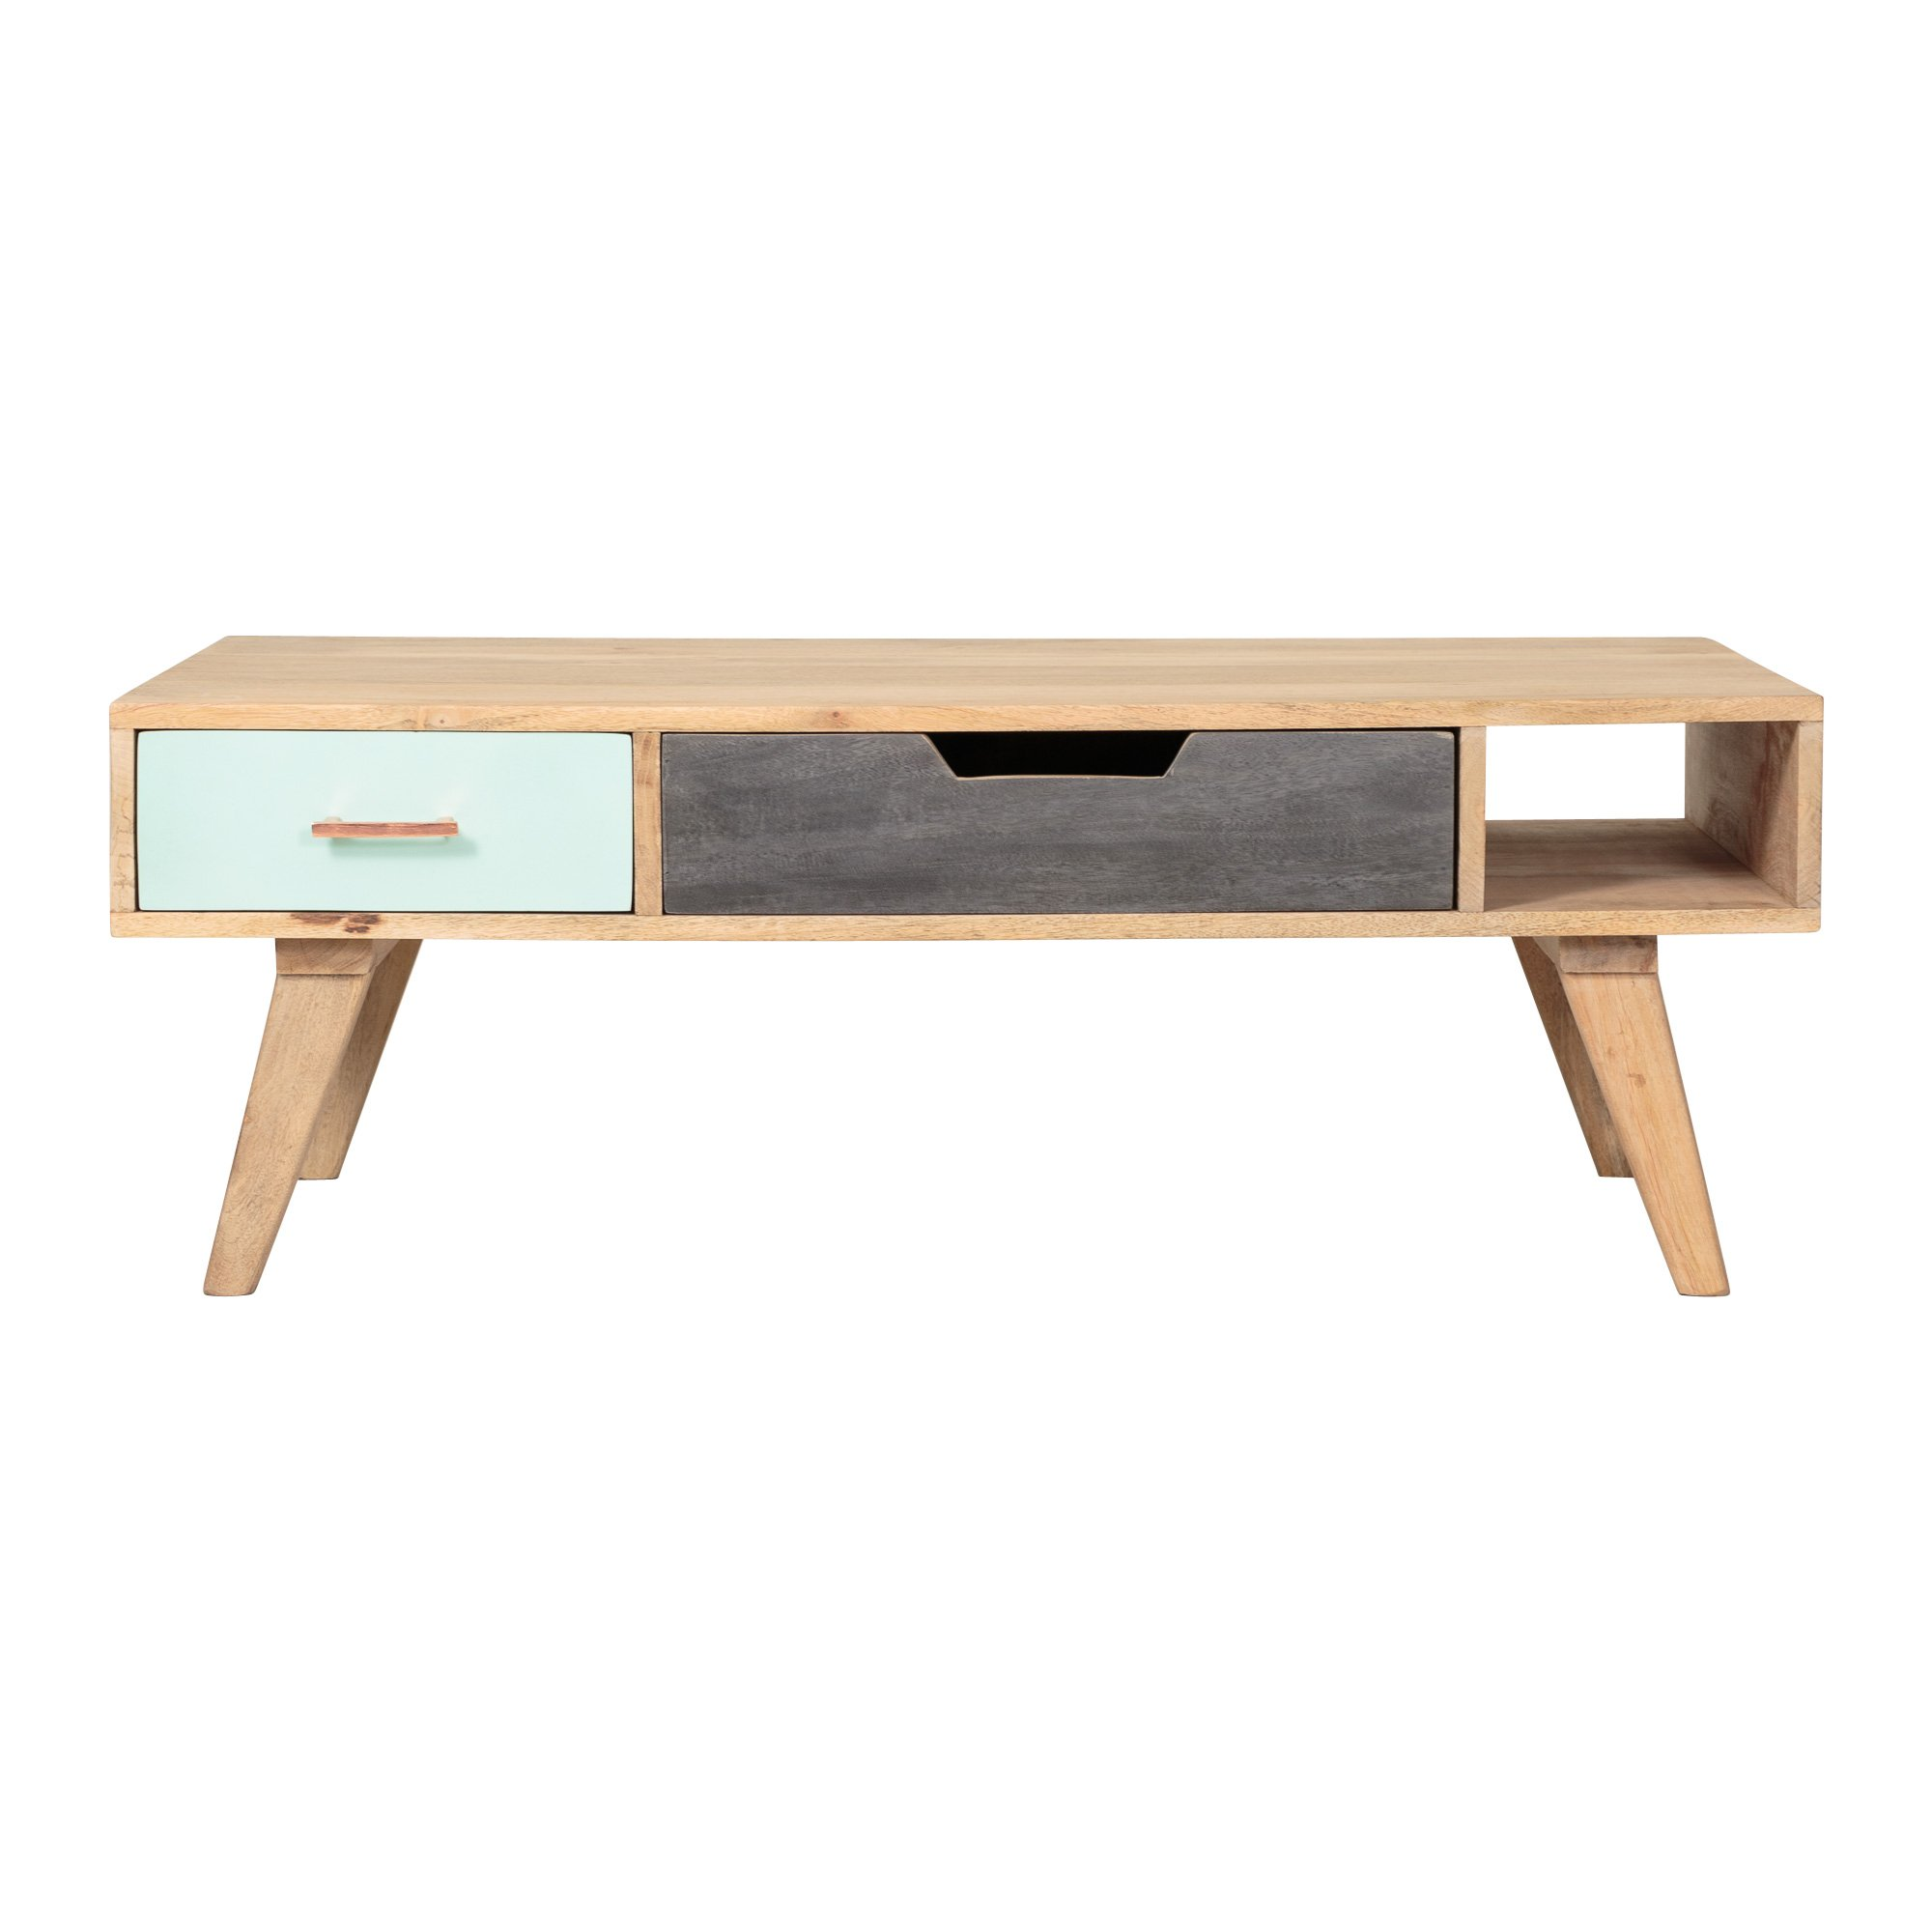 Tables Furniture Oliver Bonas